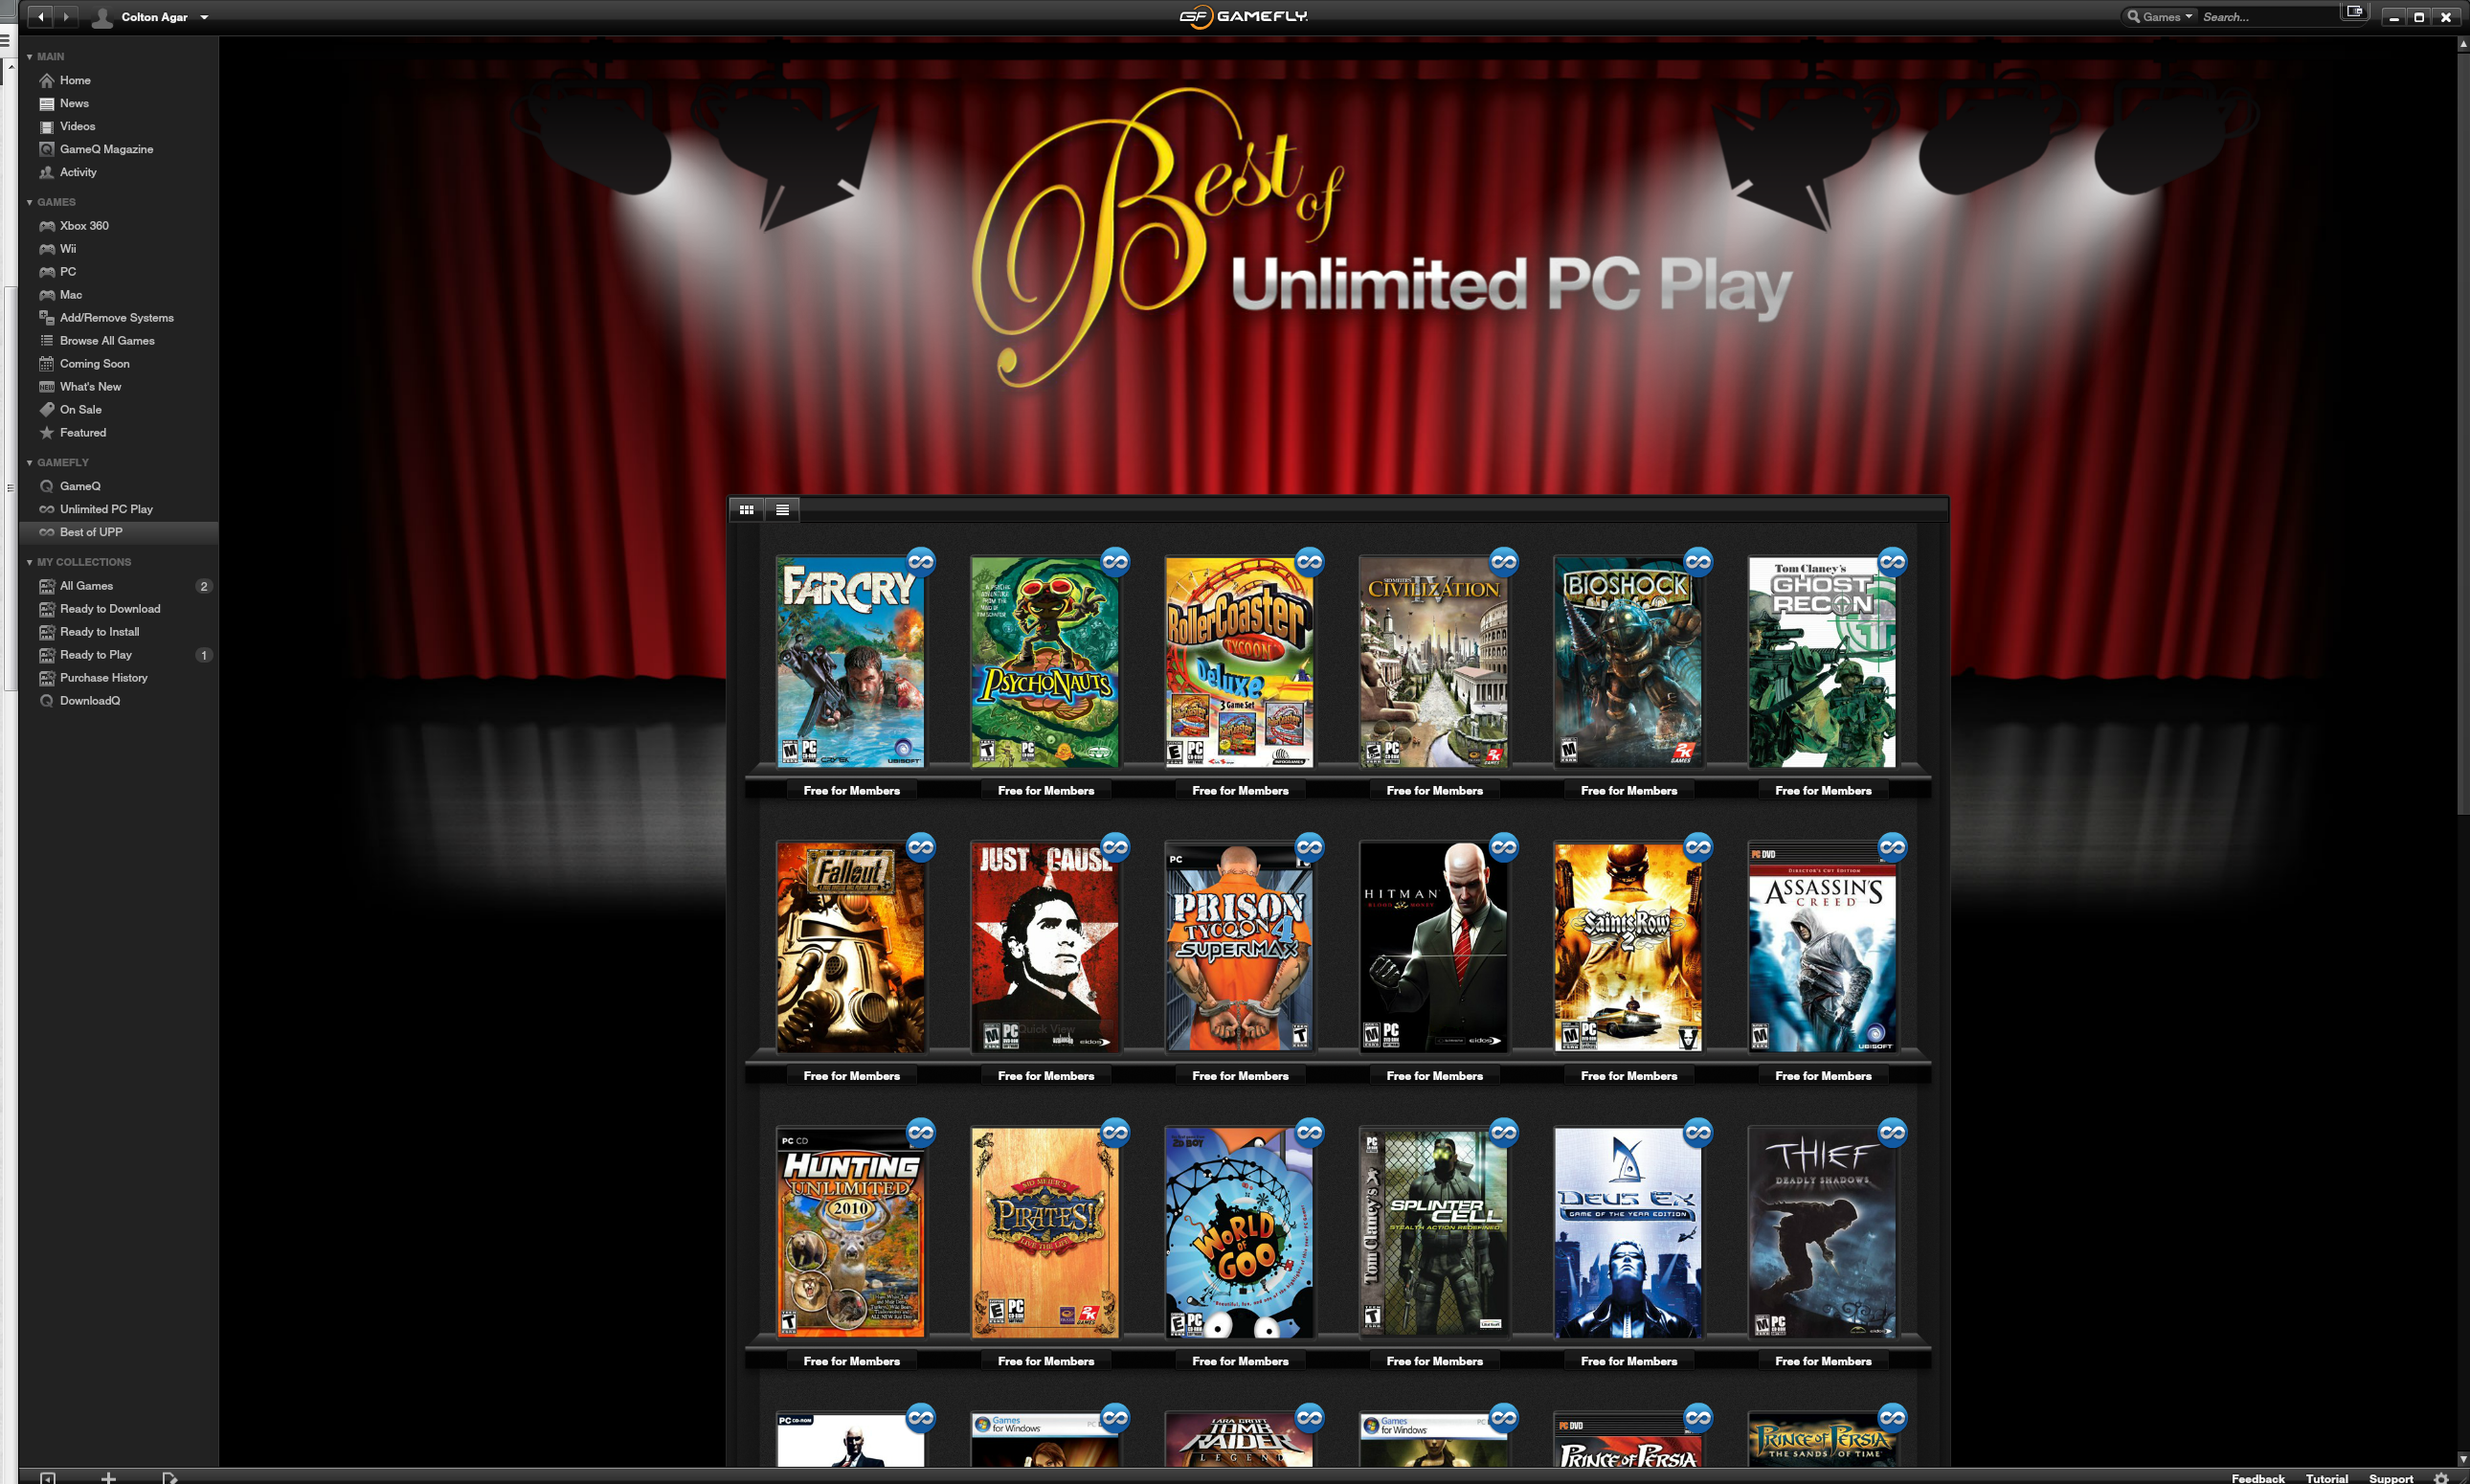 best of unlimited PC play